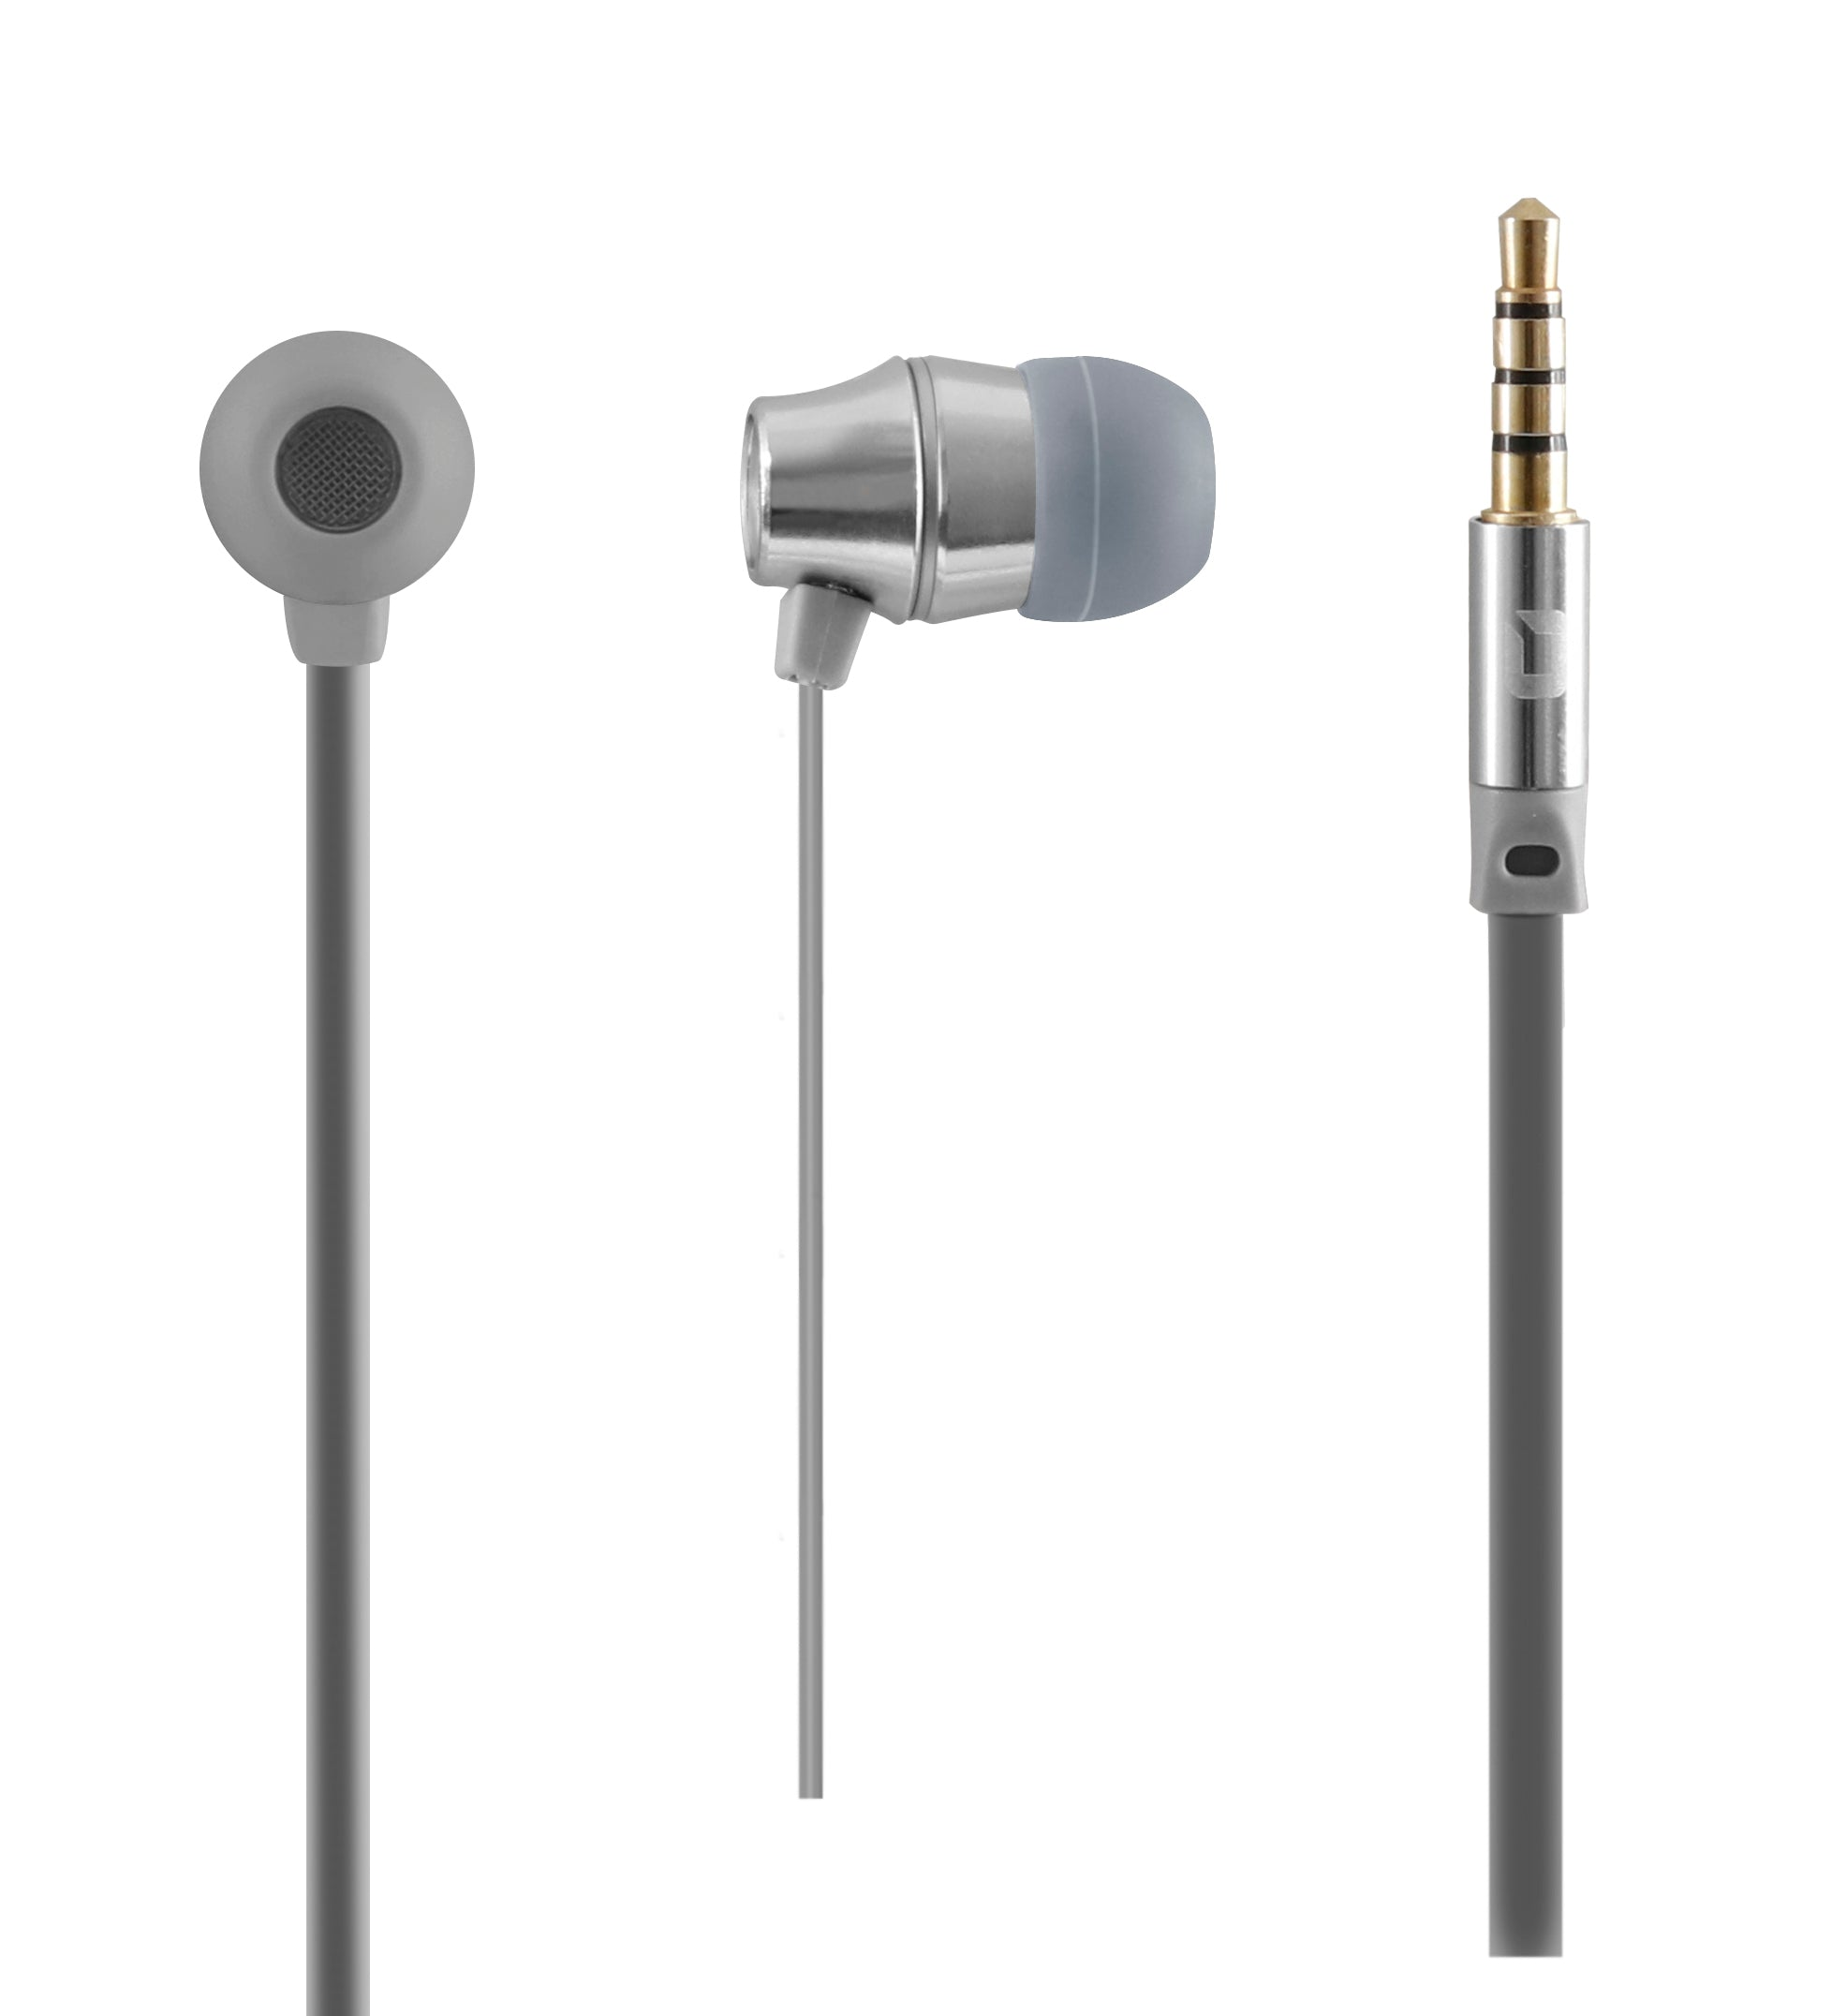 AUDIFONOS IN-EAR CON MICROFONO COLECCION METALICOS GRIS